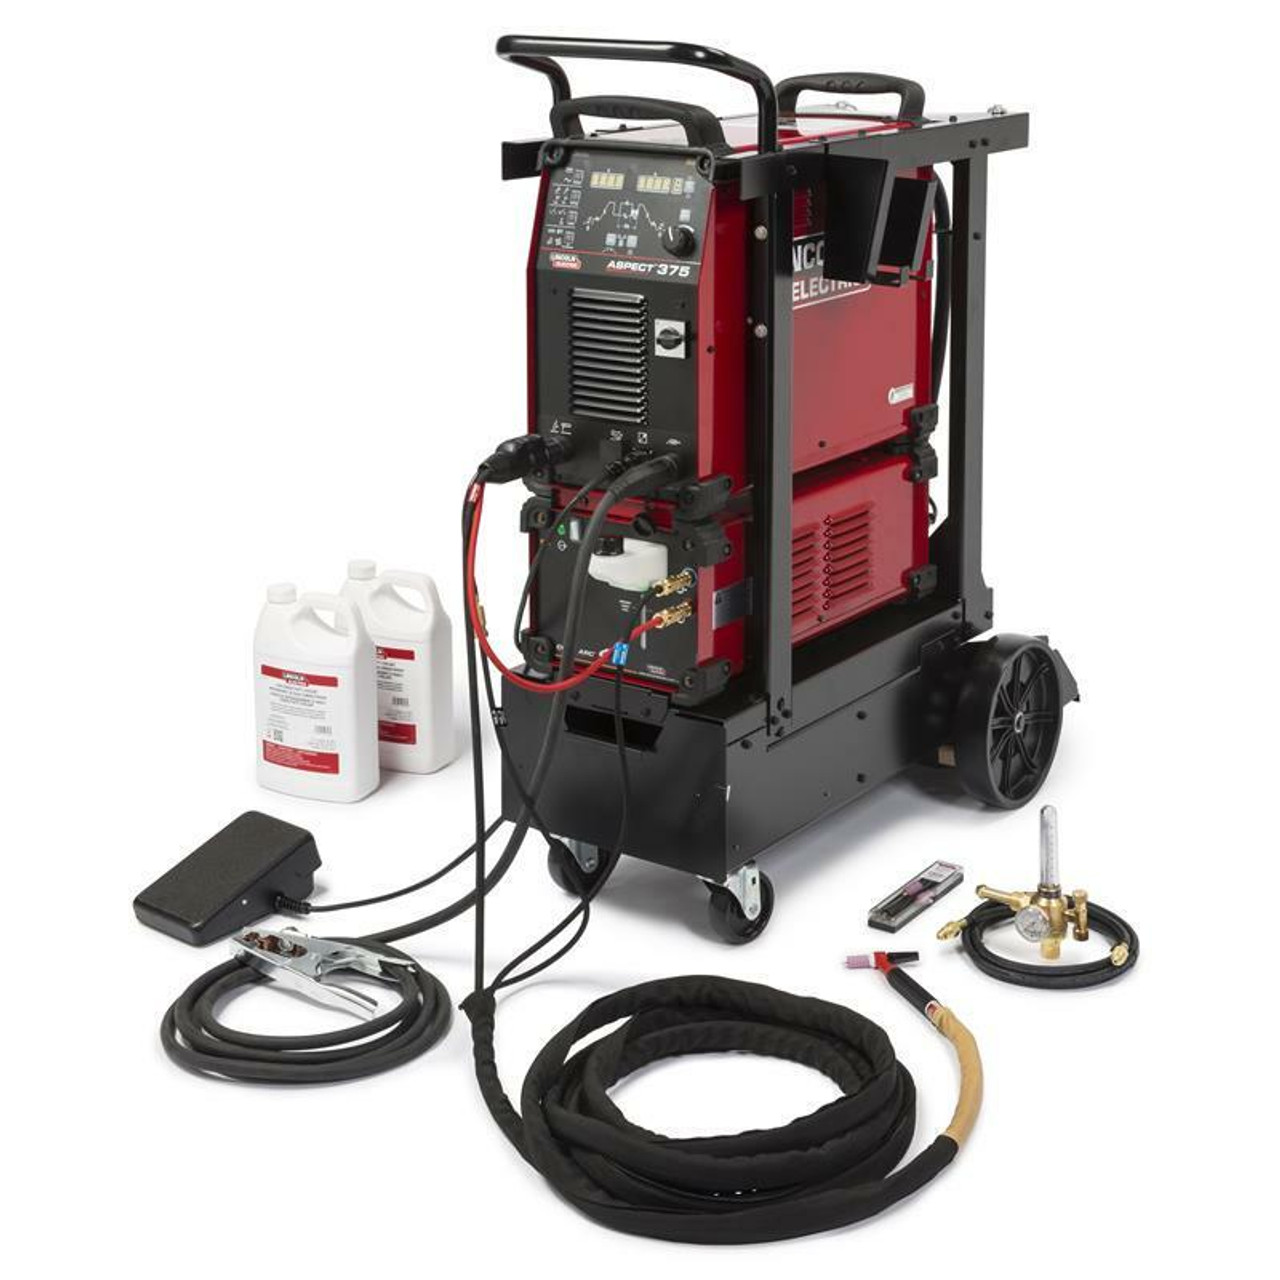 Lincoln Aspect 375 AC/DC TIG Welder Ready-Pak K3946-2